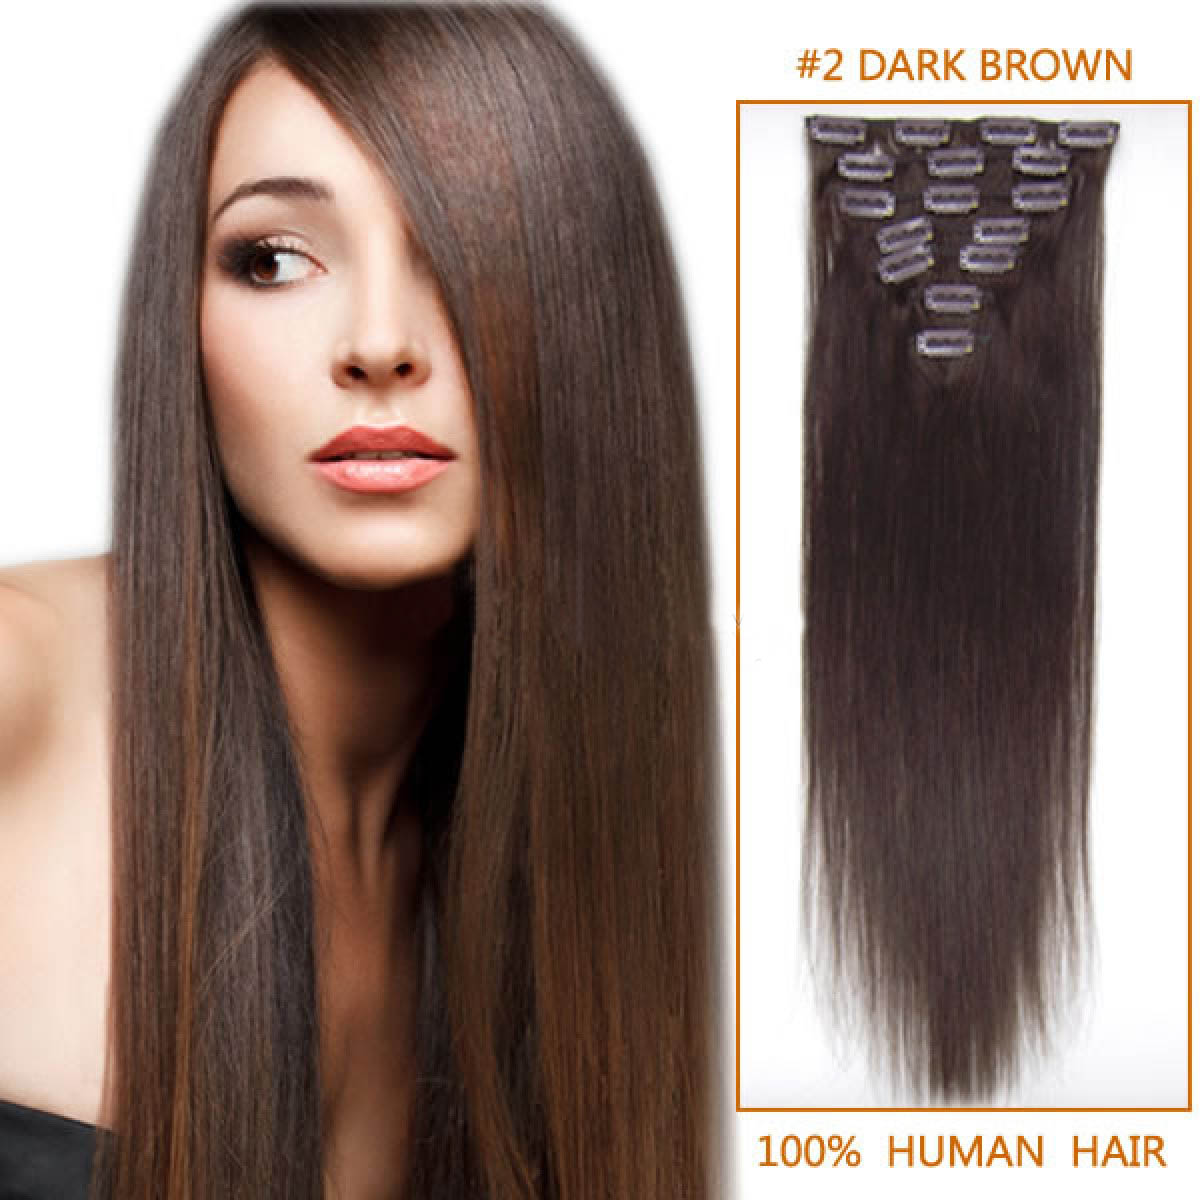 20 Inch 2 Dark Brown Clip In Remy Human Hair Extensions 7pcs